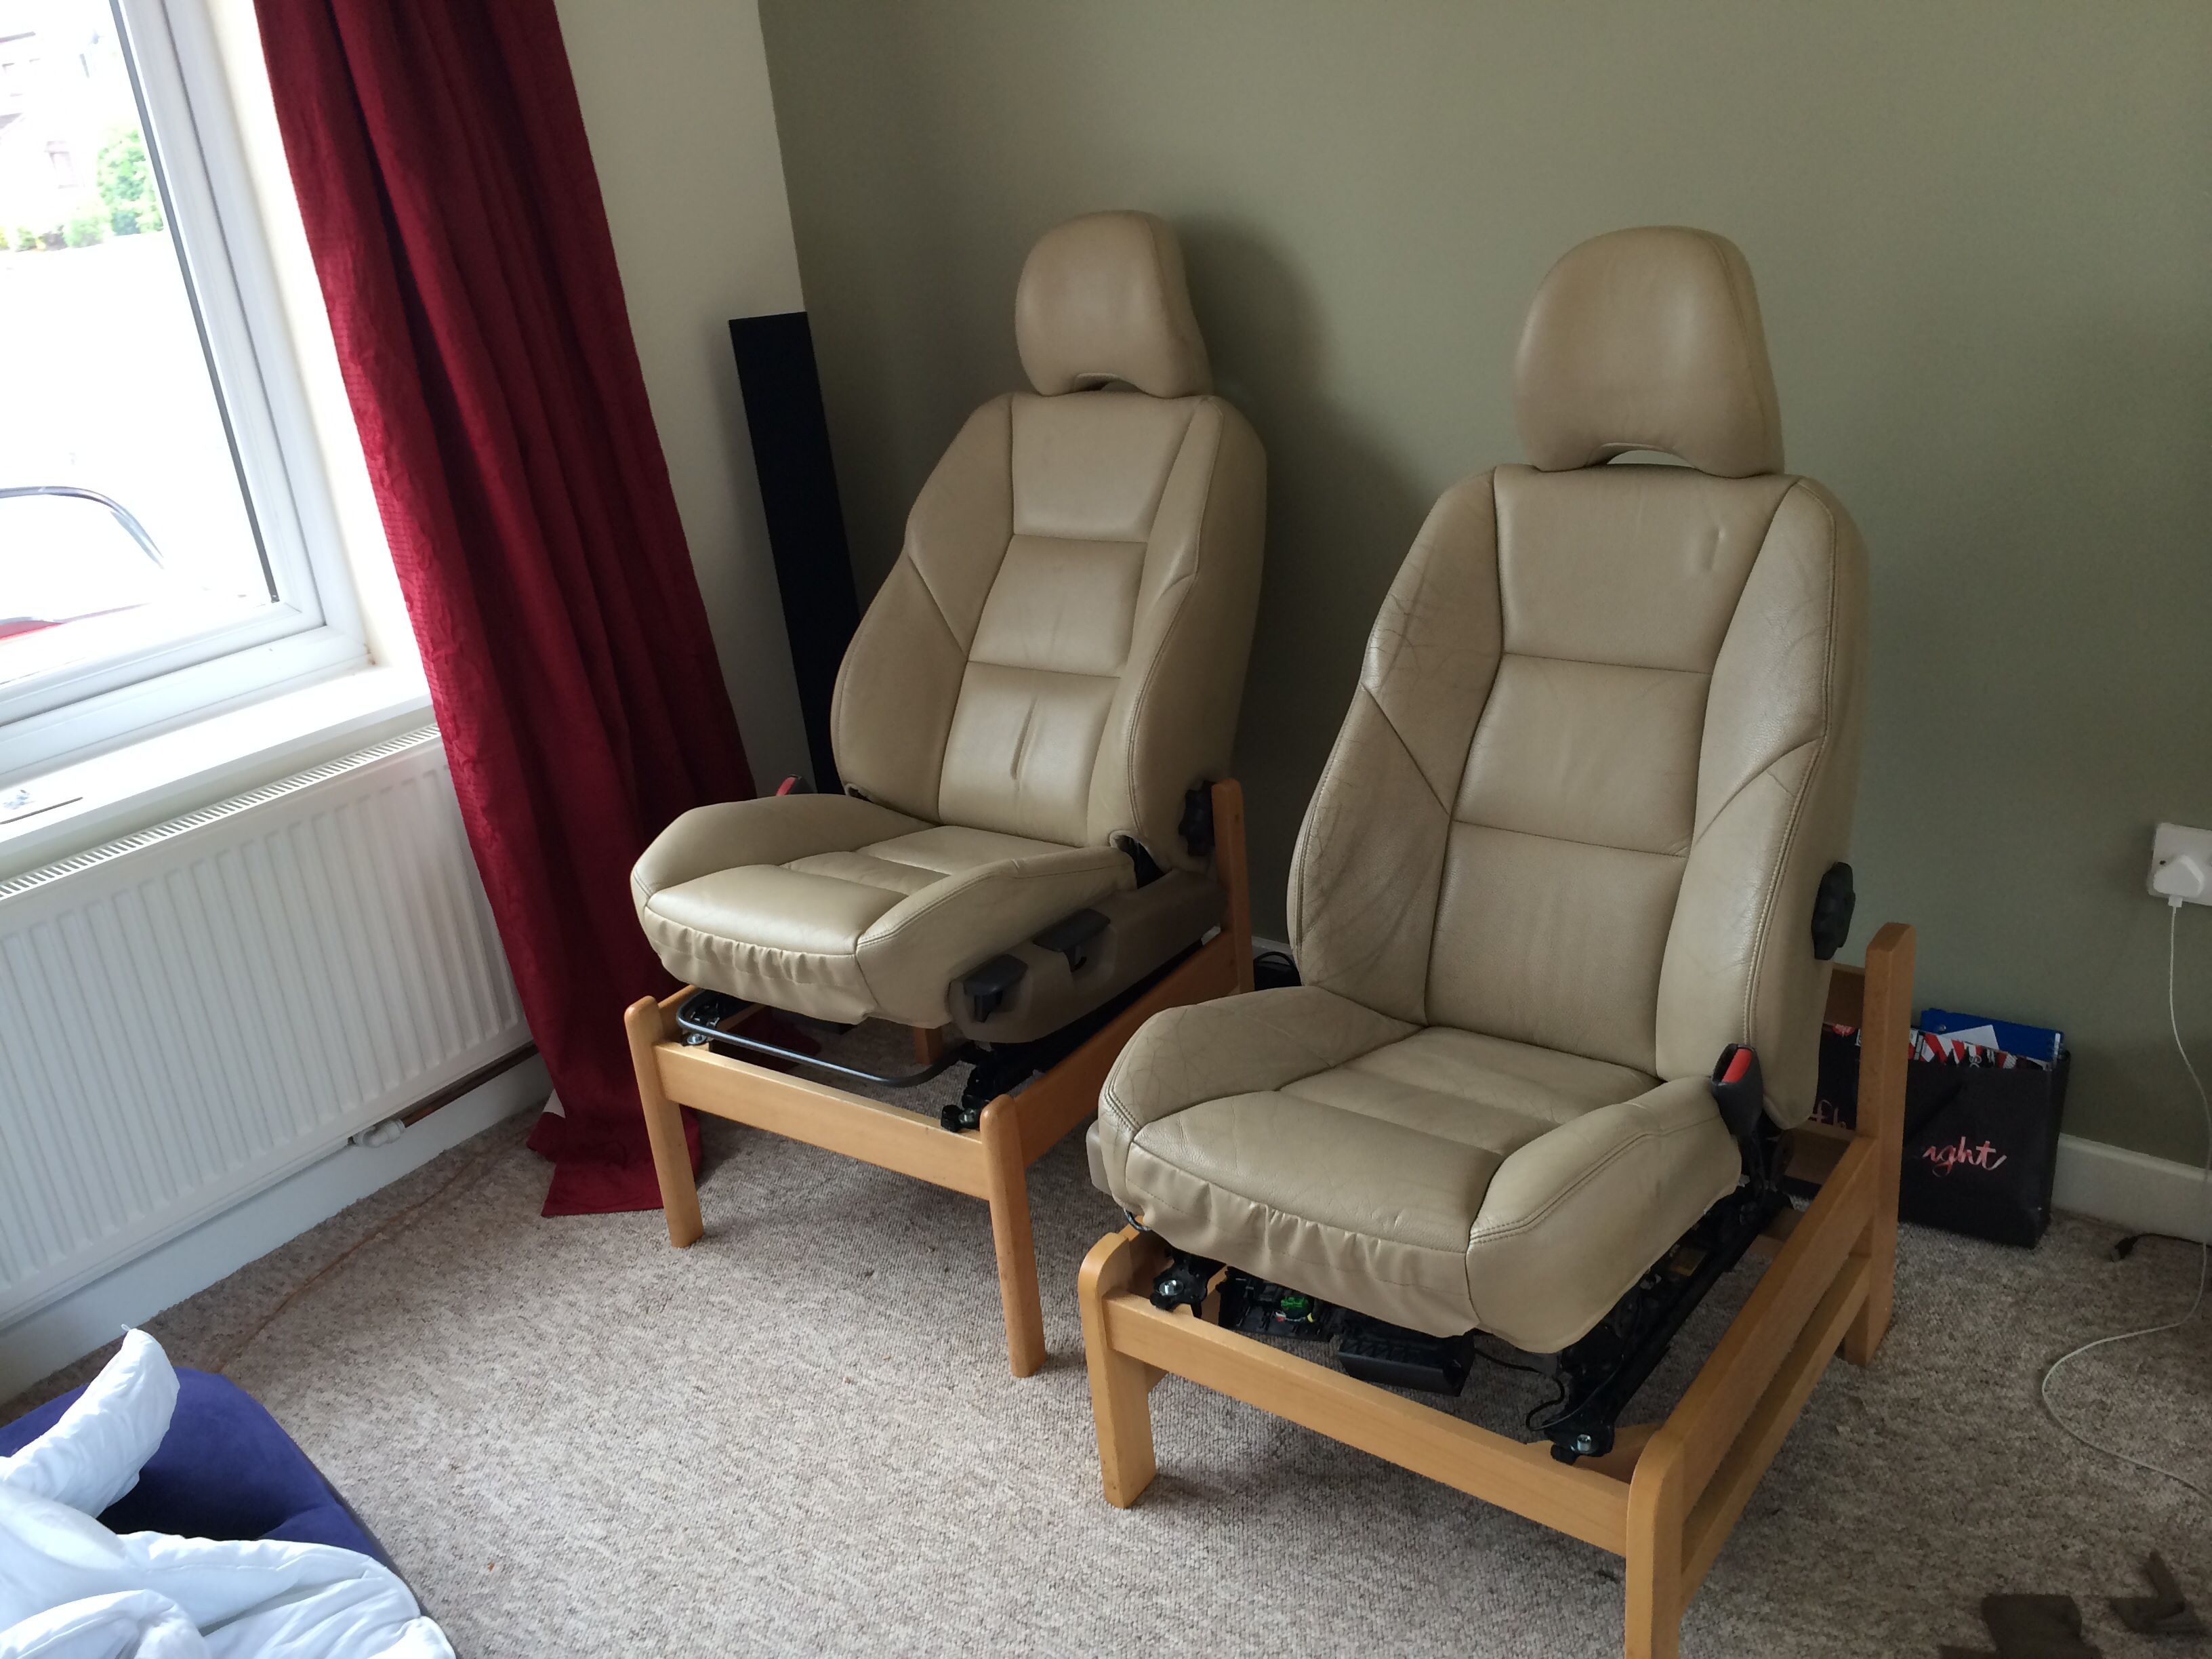 Home made car seat chairs. So comfy #homeofficeideasformen